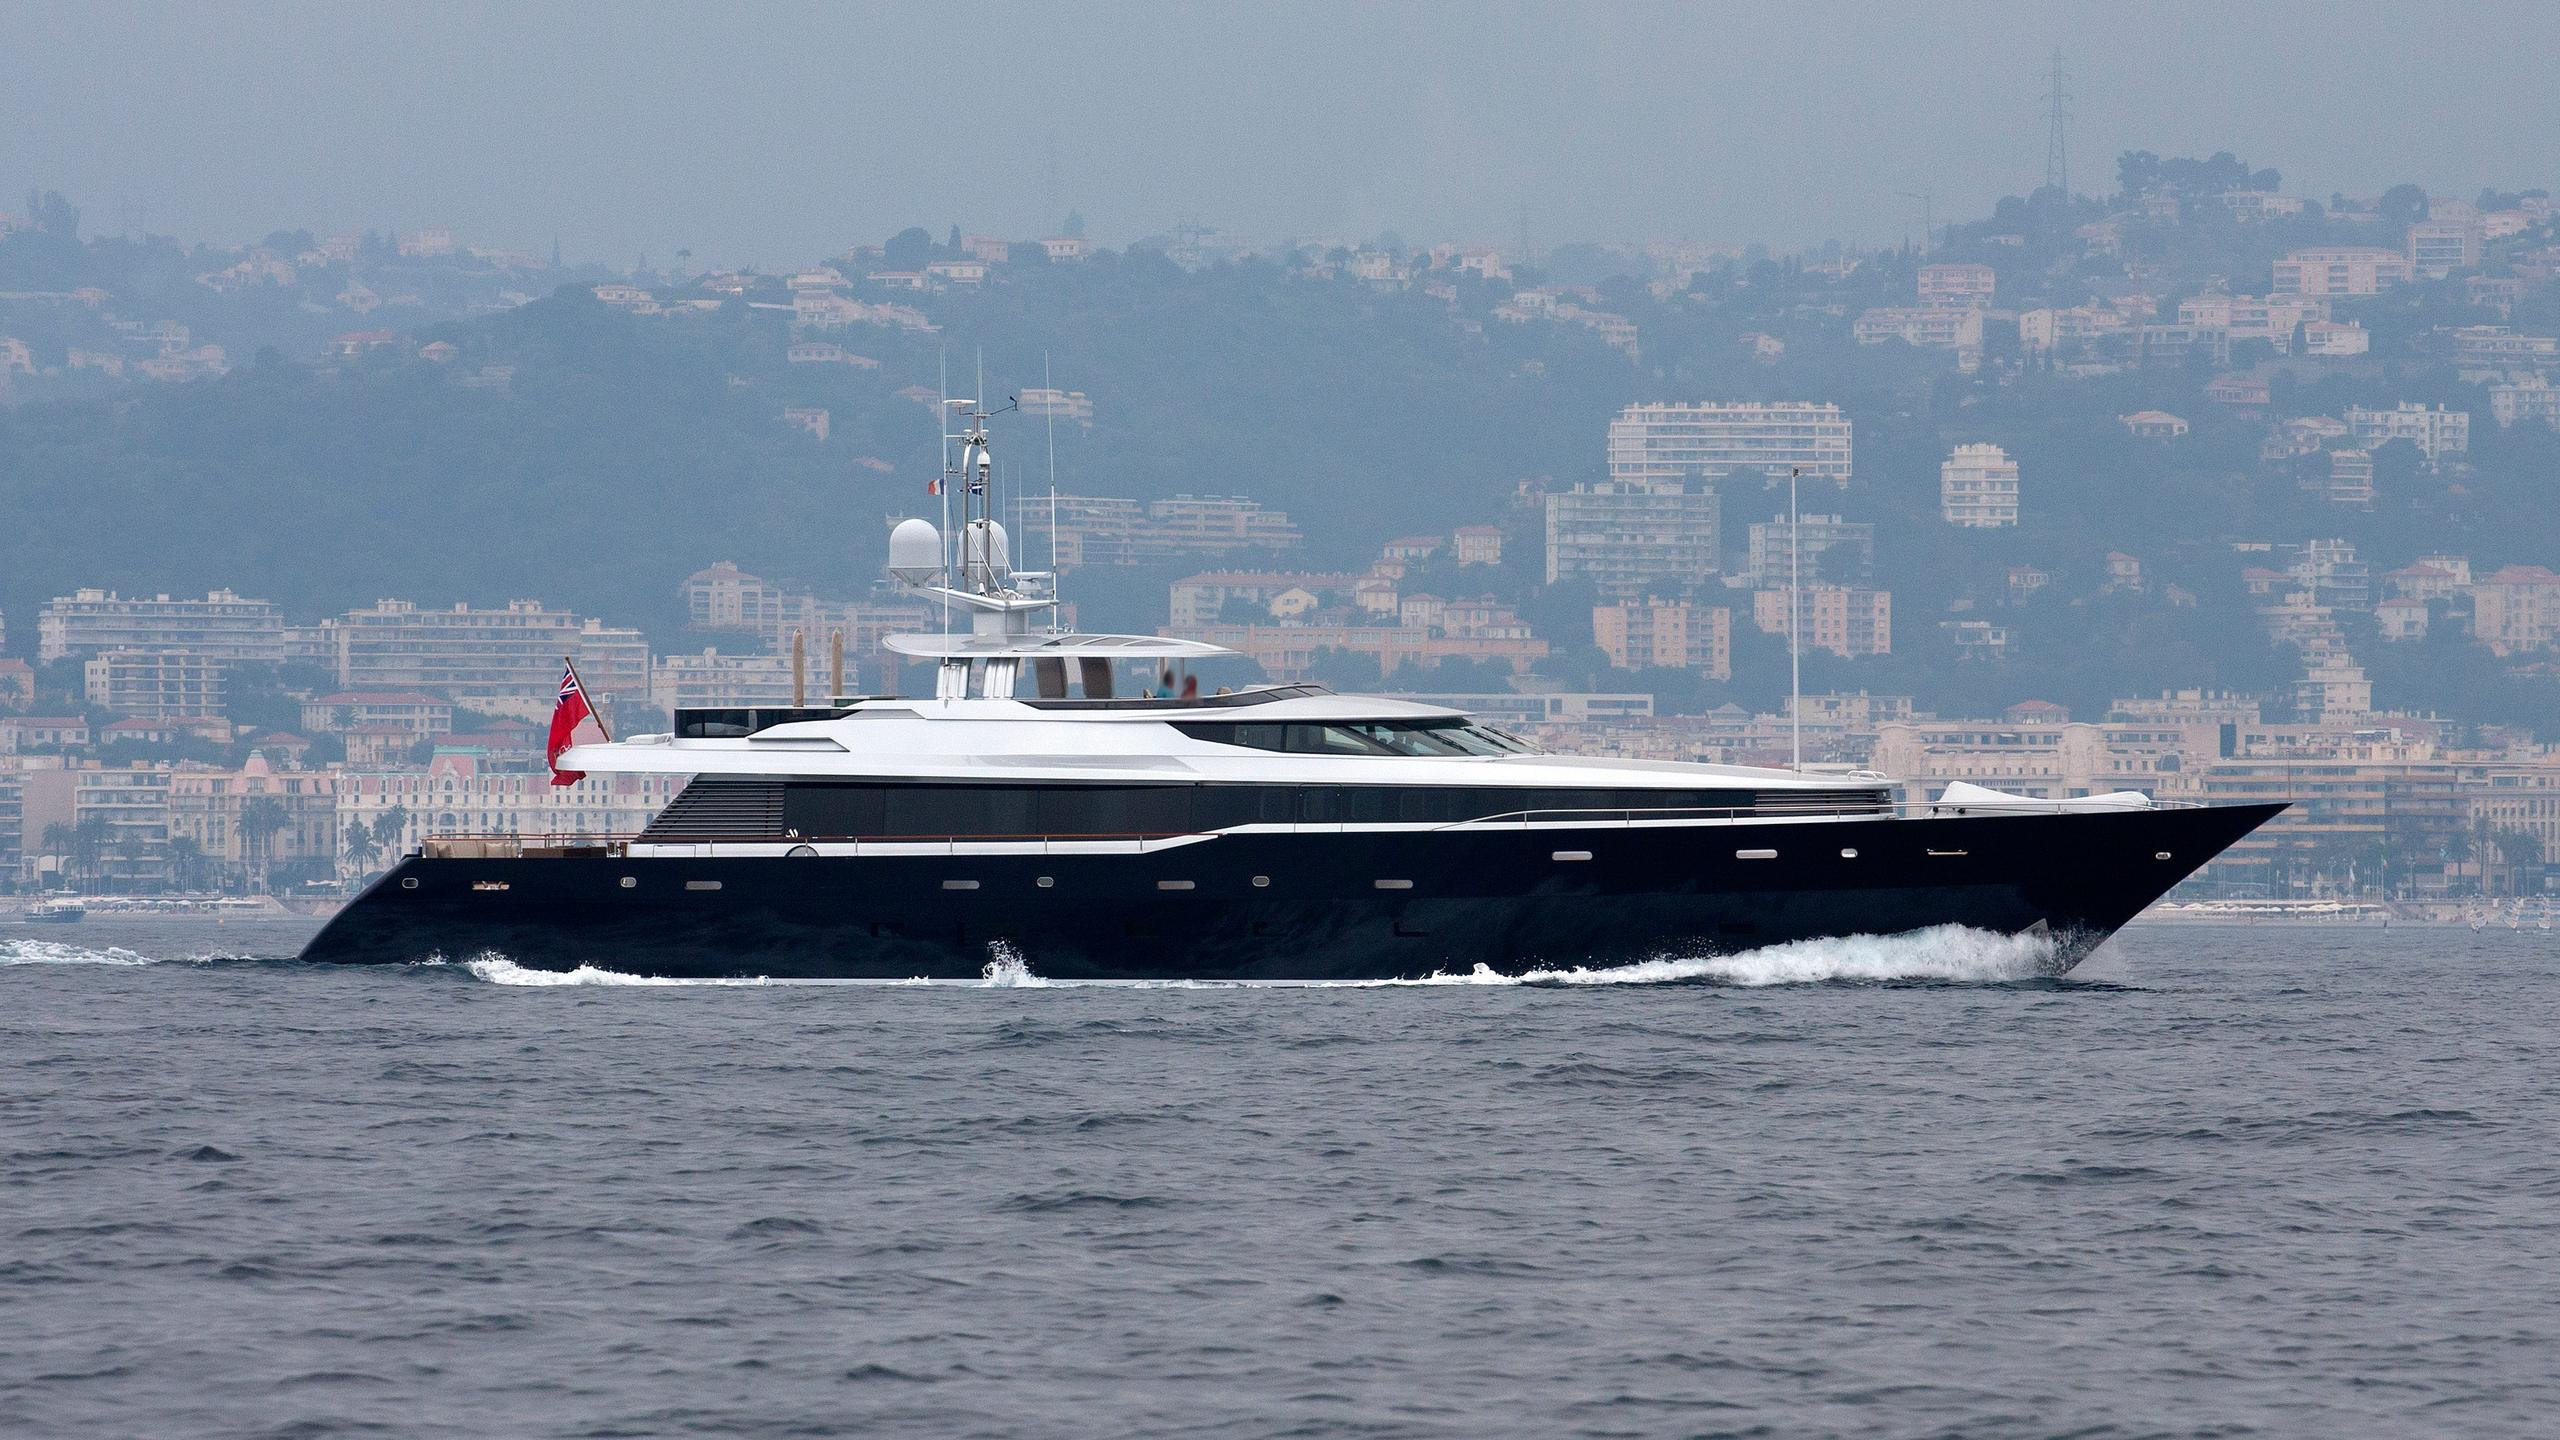 gazelle-polly-motor-yacht-alloy-2007-41m-profile